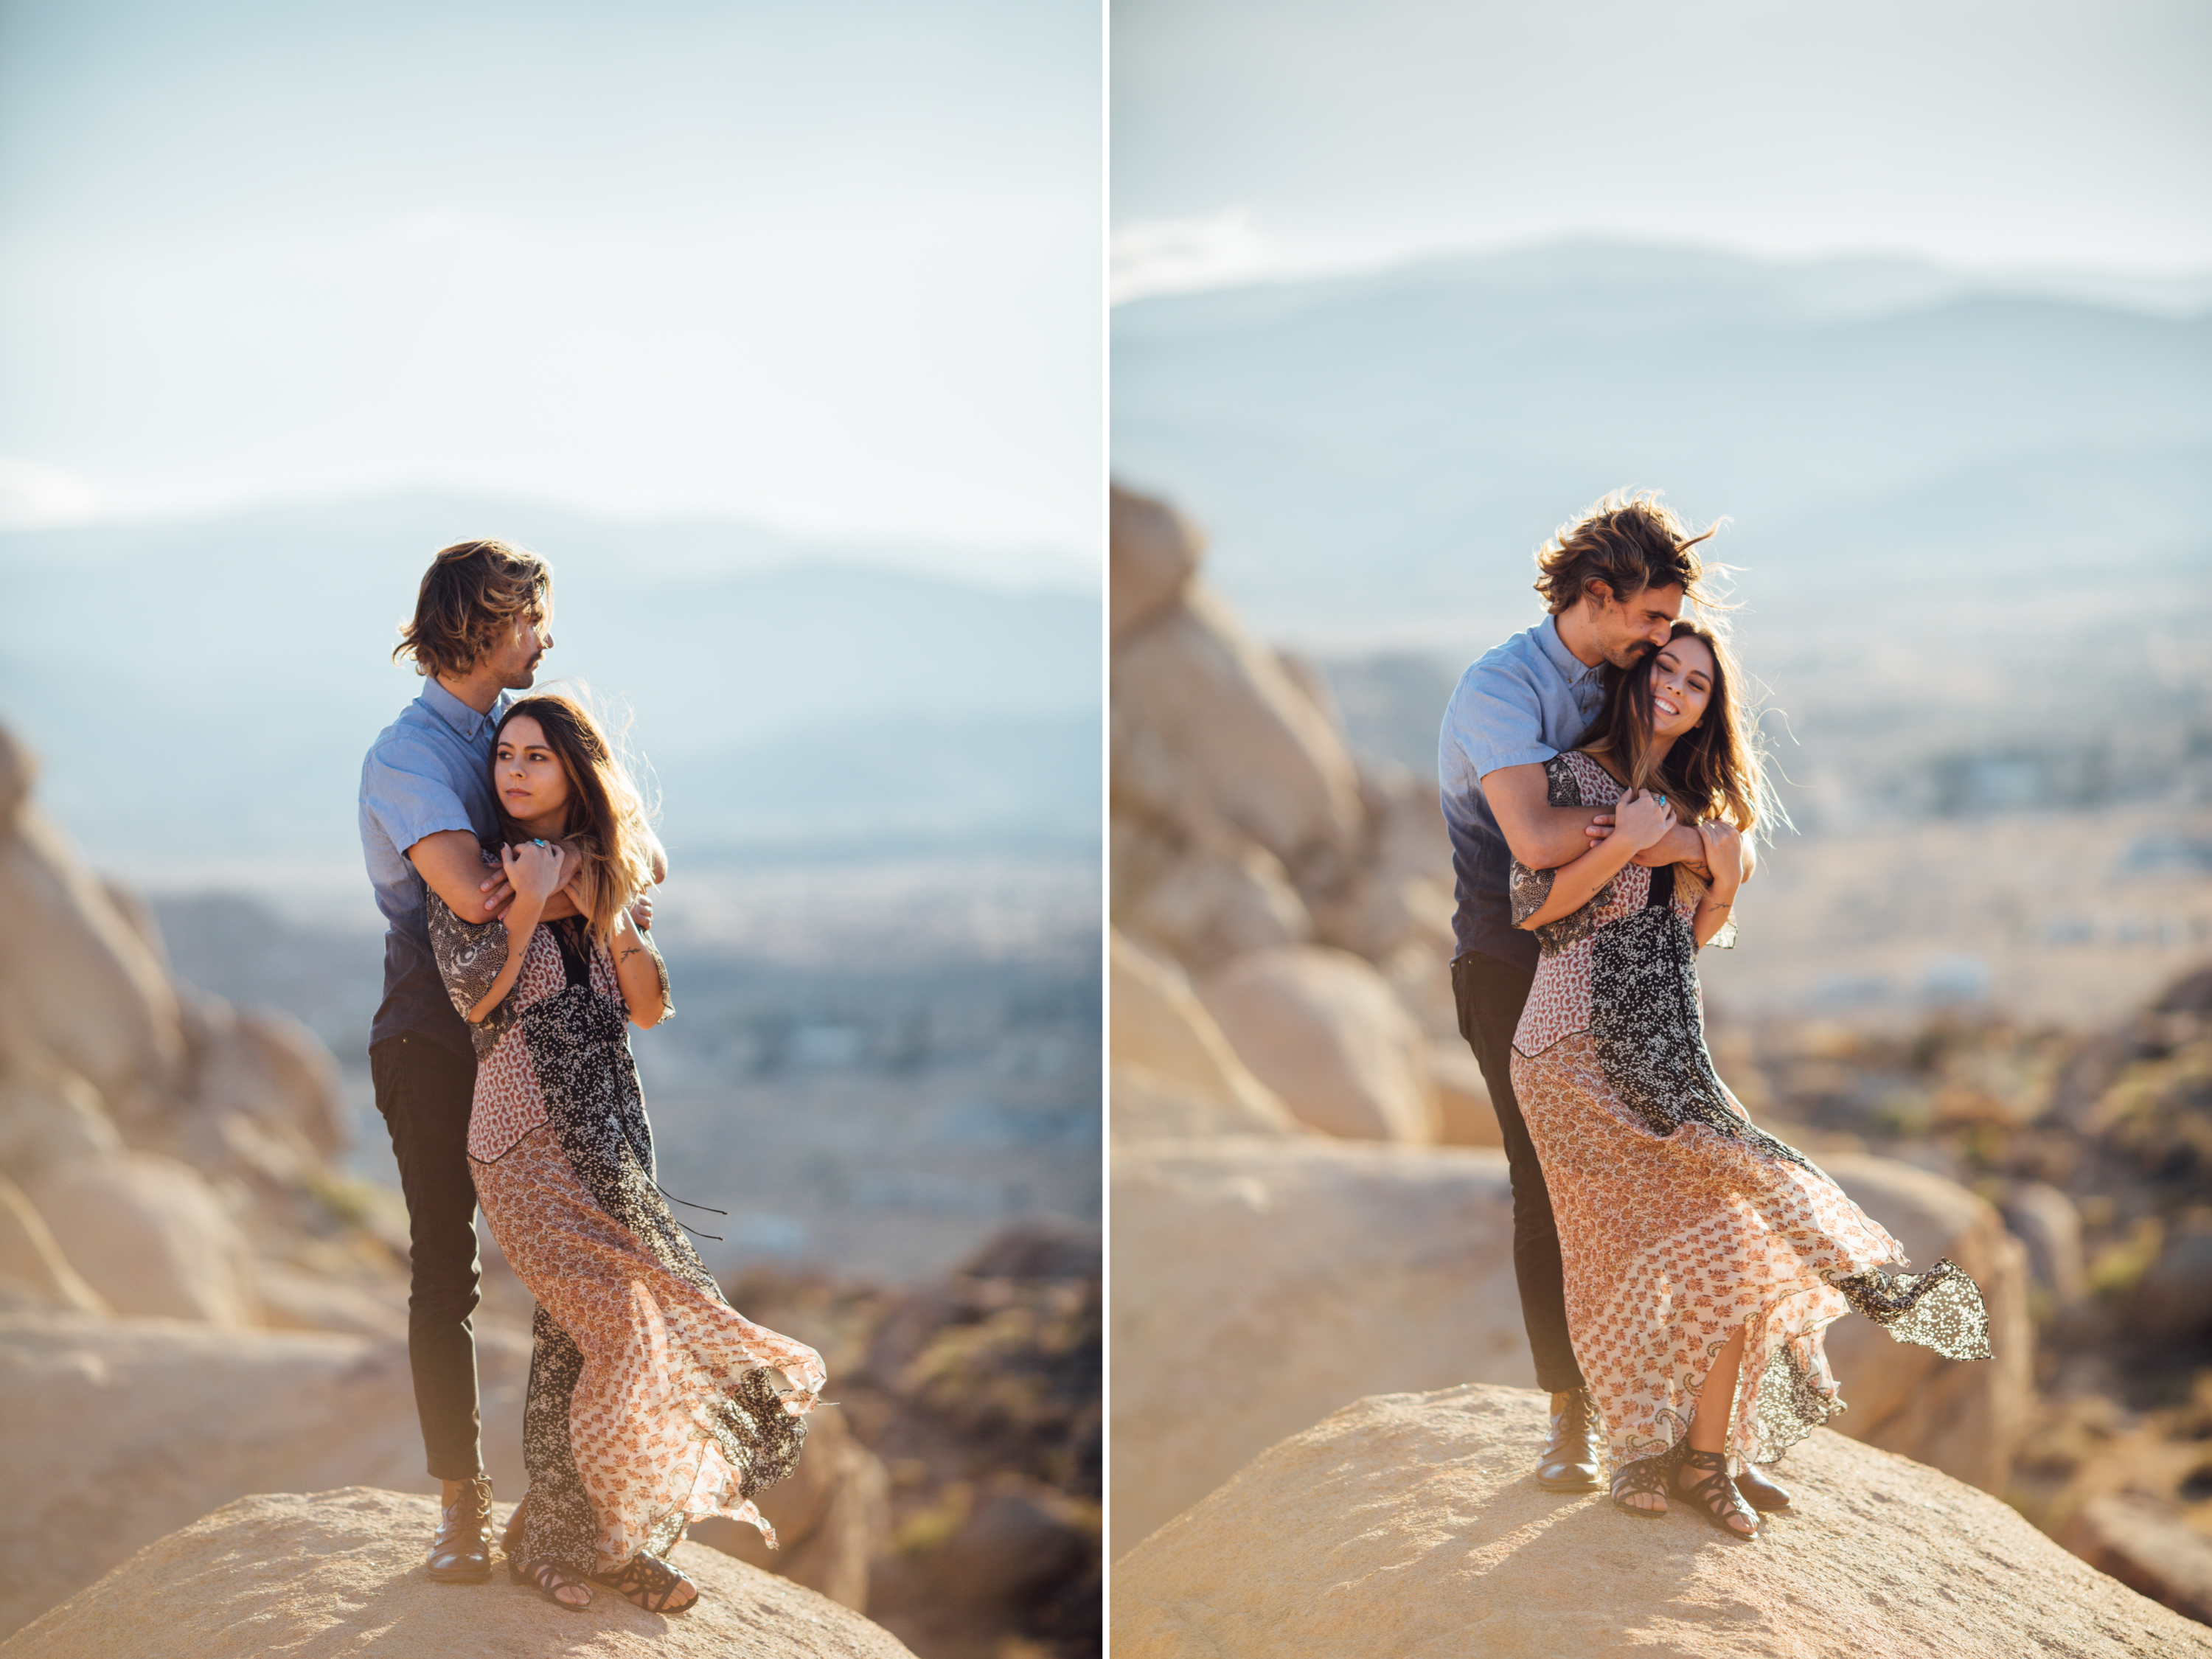 Joshua_Tree_Engagement_Couple_Wedding_Photography_Artur_Zaitsev-4a